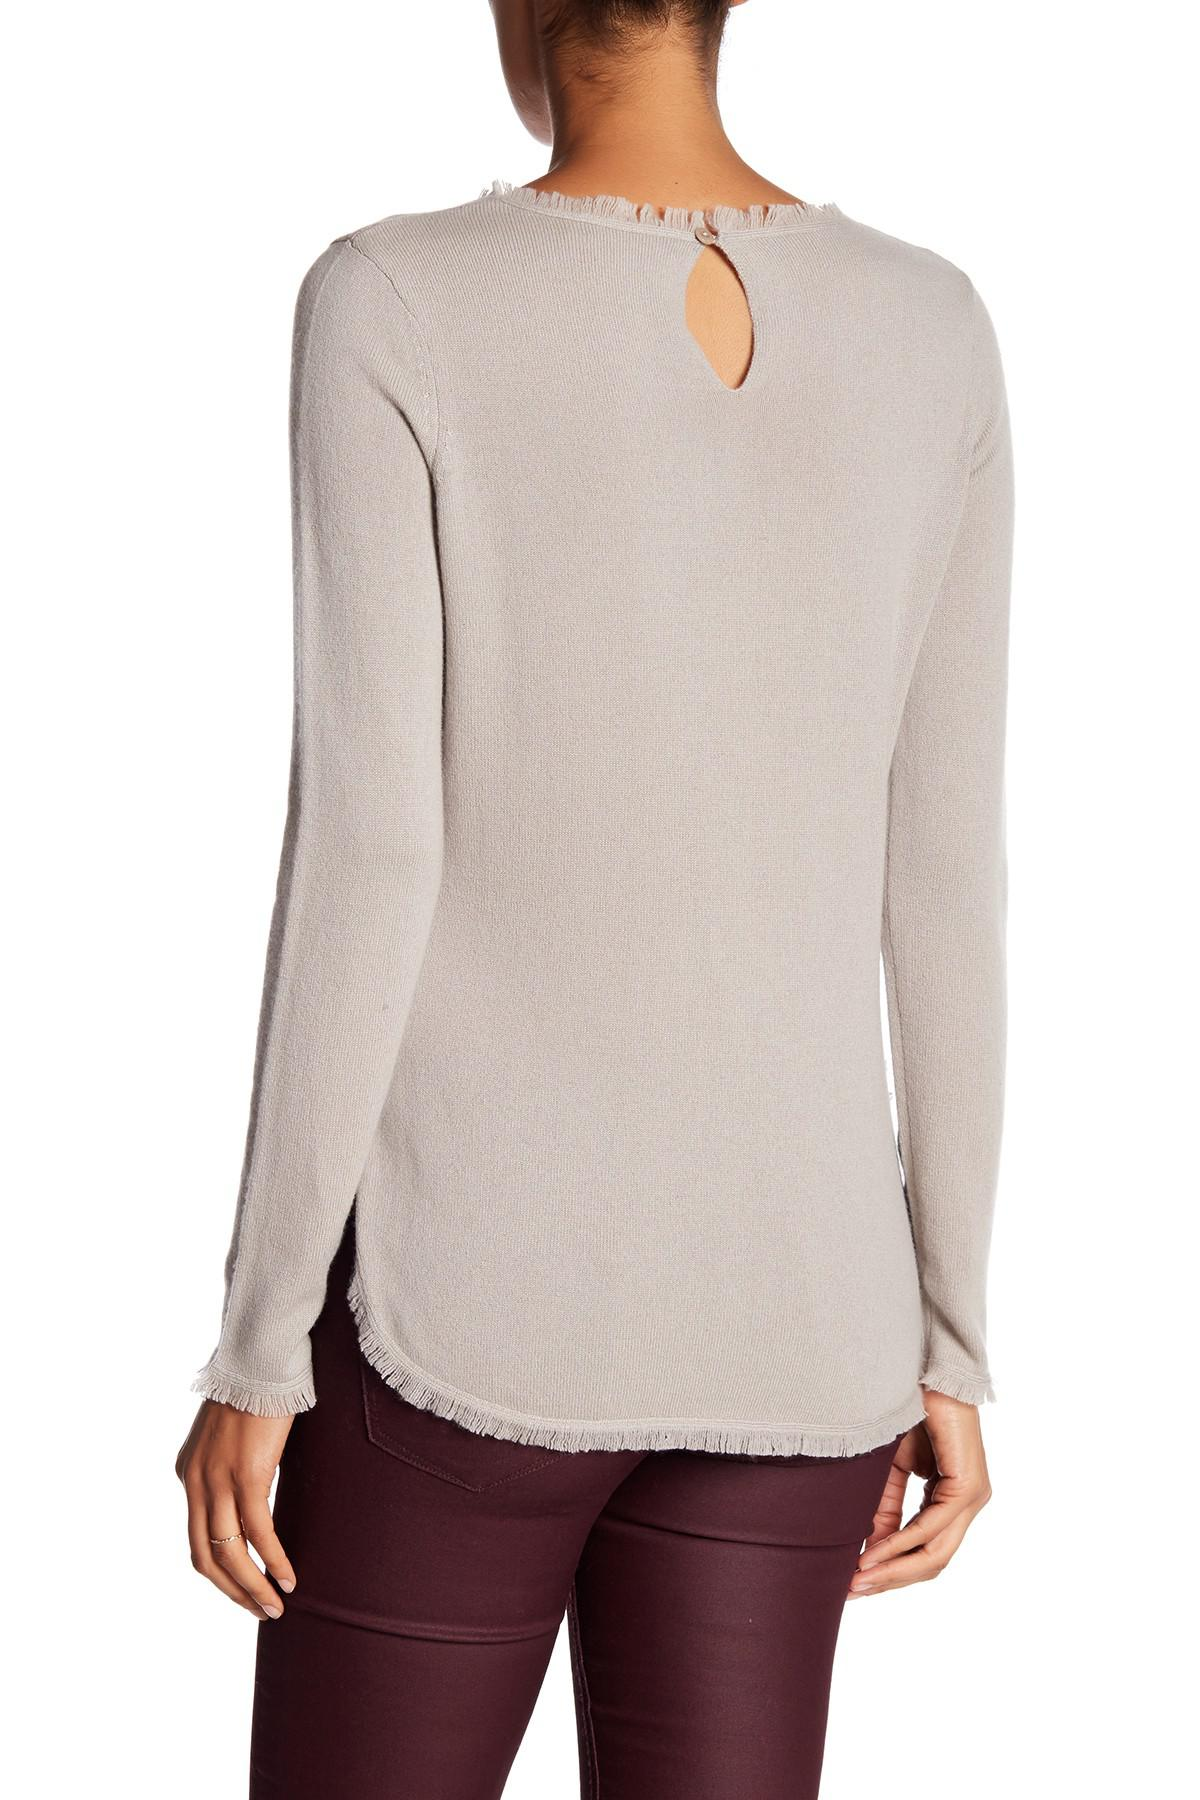 Lyst In Cashmere Frayed Edge Cashmere Sweater